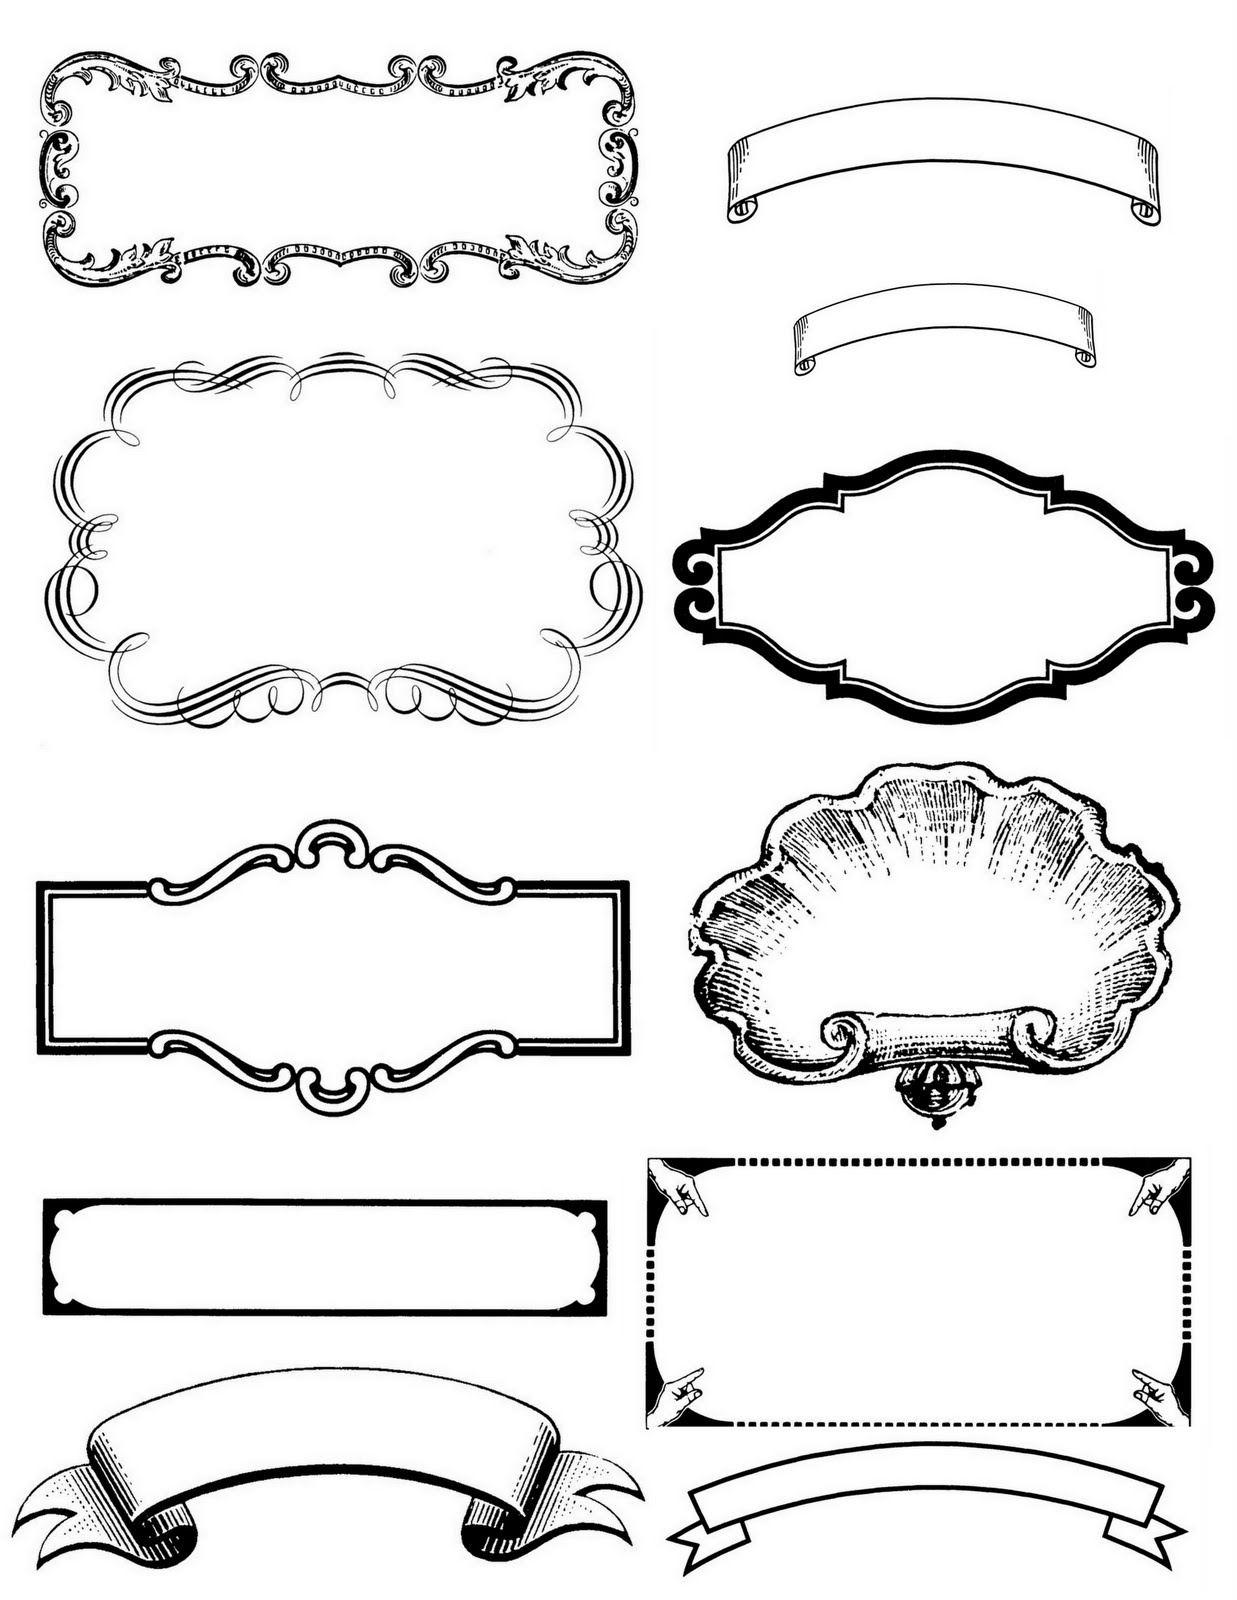 005 Free Printable Label Templates Template Ideas Album Imagenes - Free Printable Label Templates